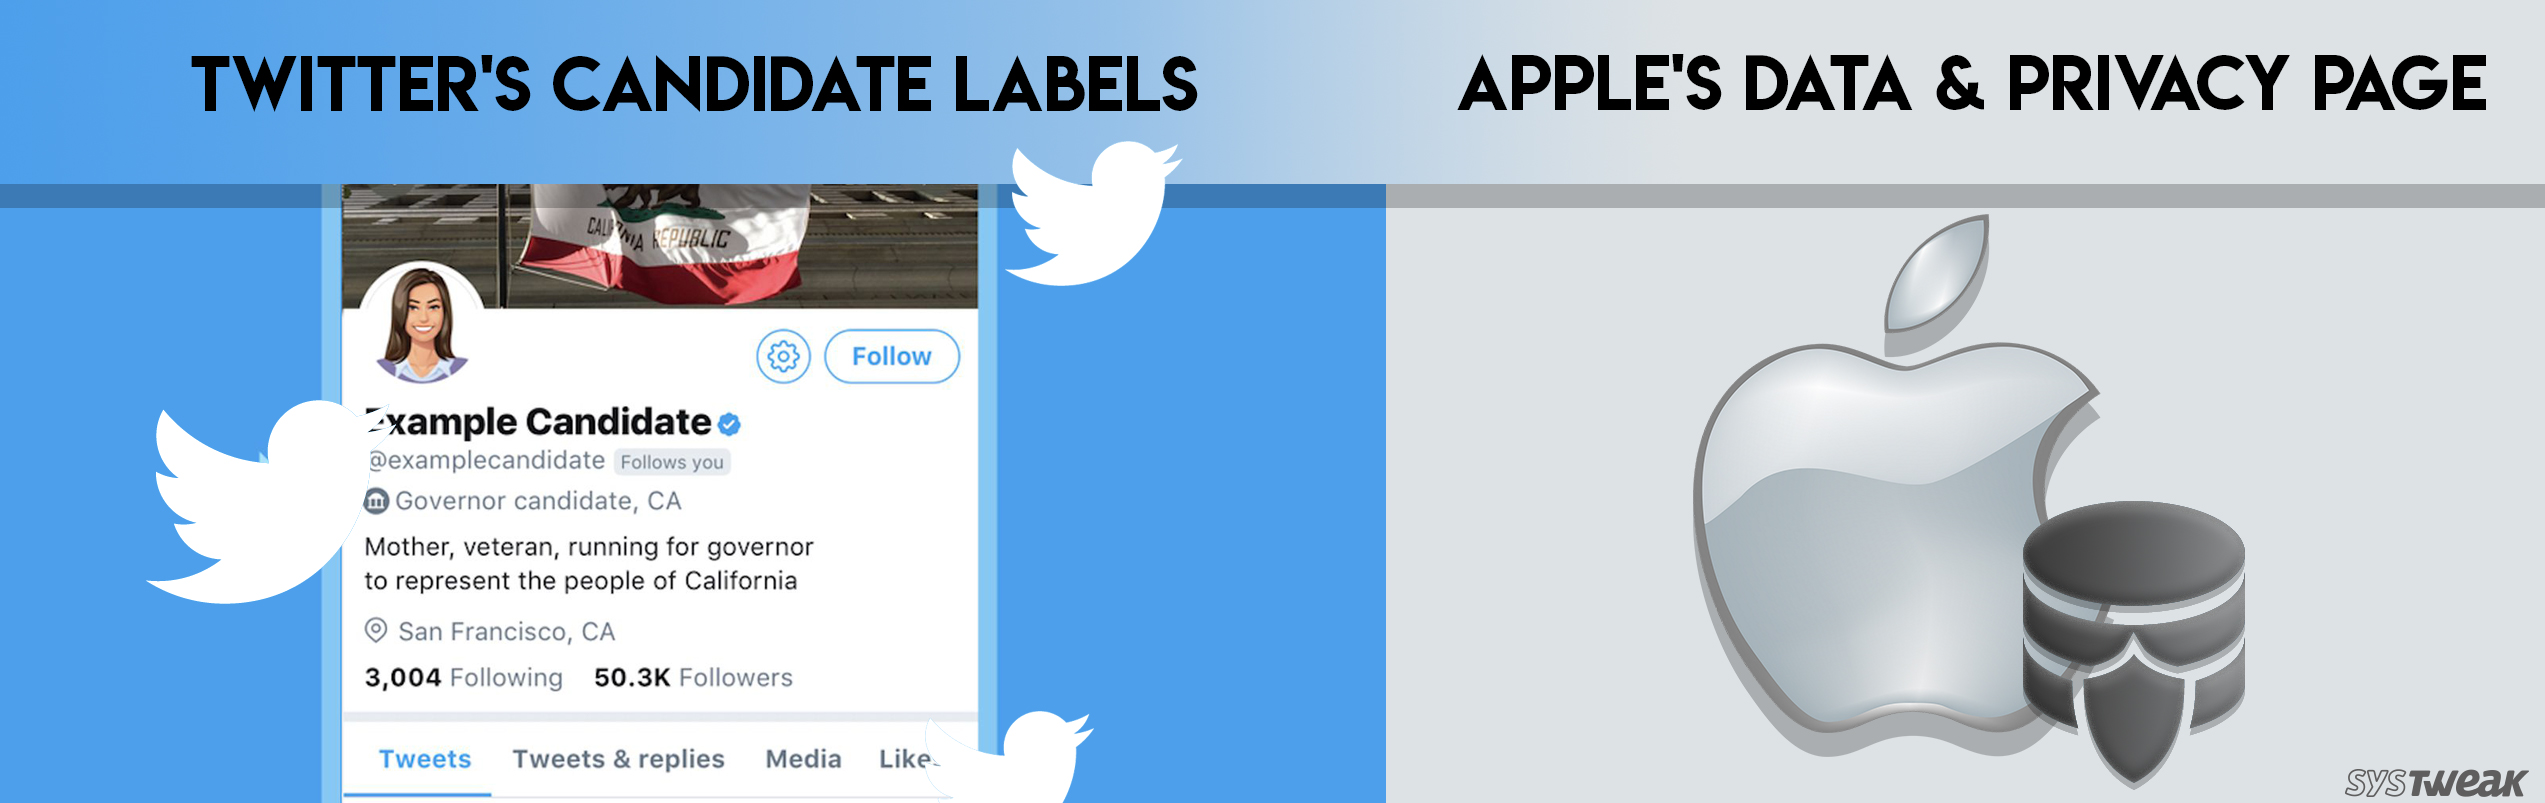 """Newsletter: Twitter Prepares For Midterm Elections & Apple Brings """"Data And Privacy"""" Page On Its Website"""